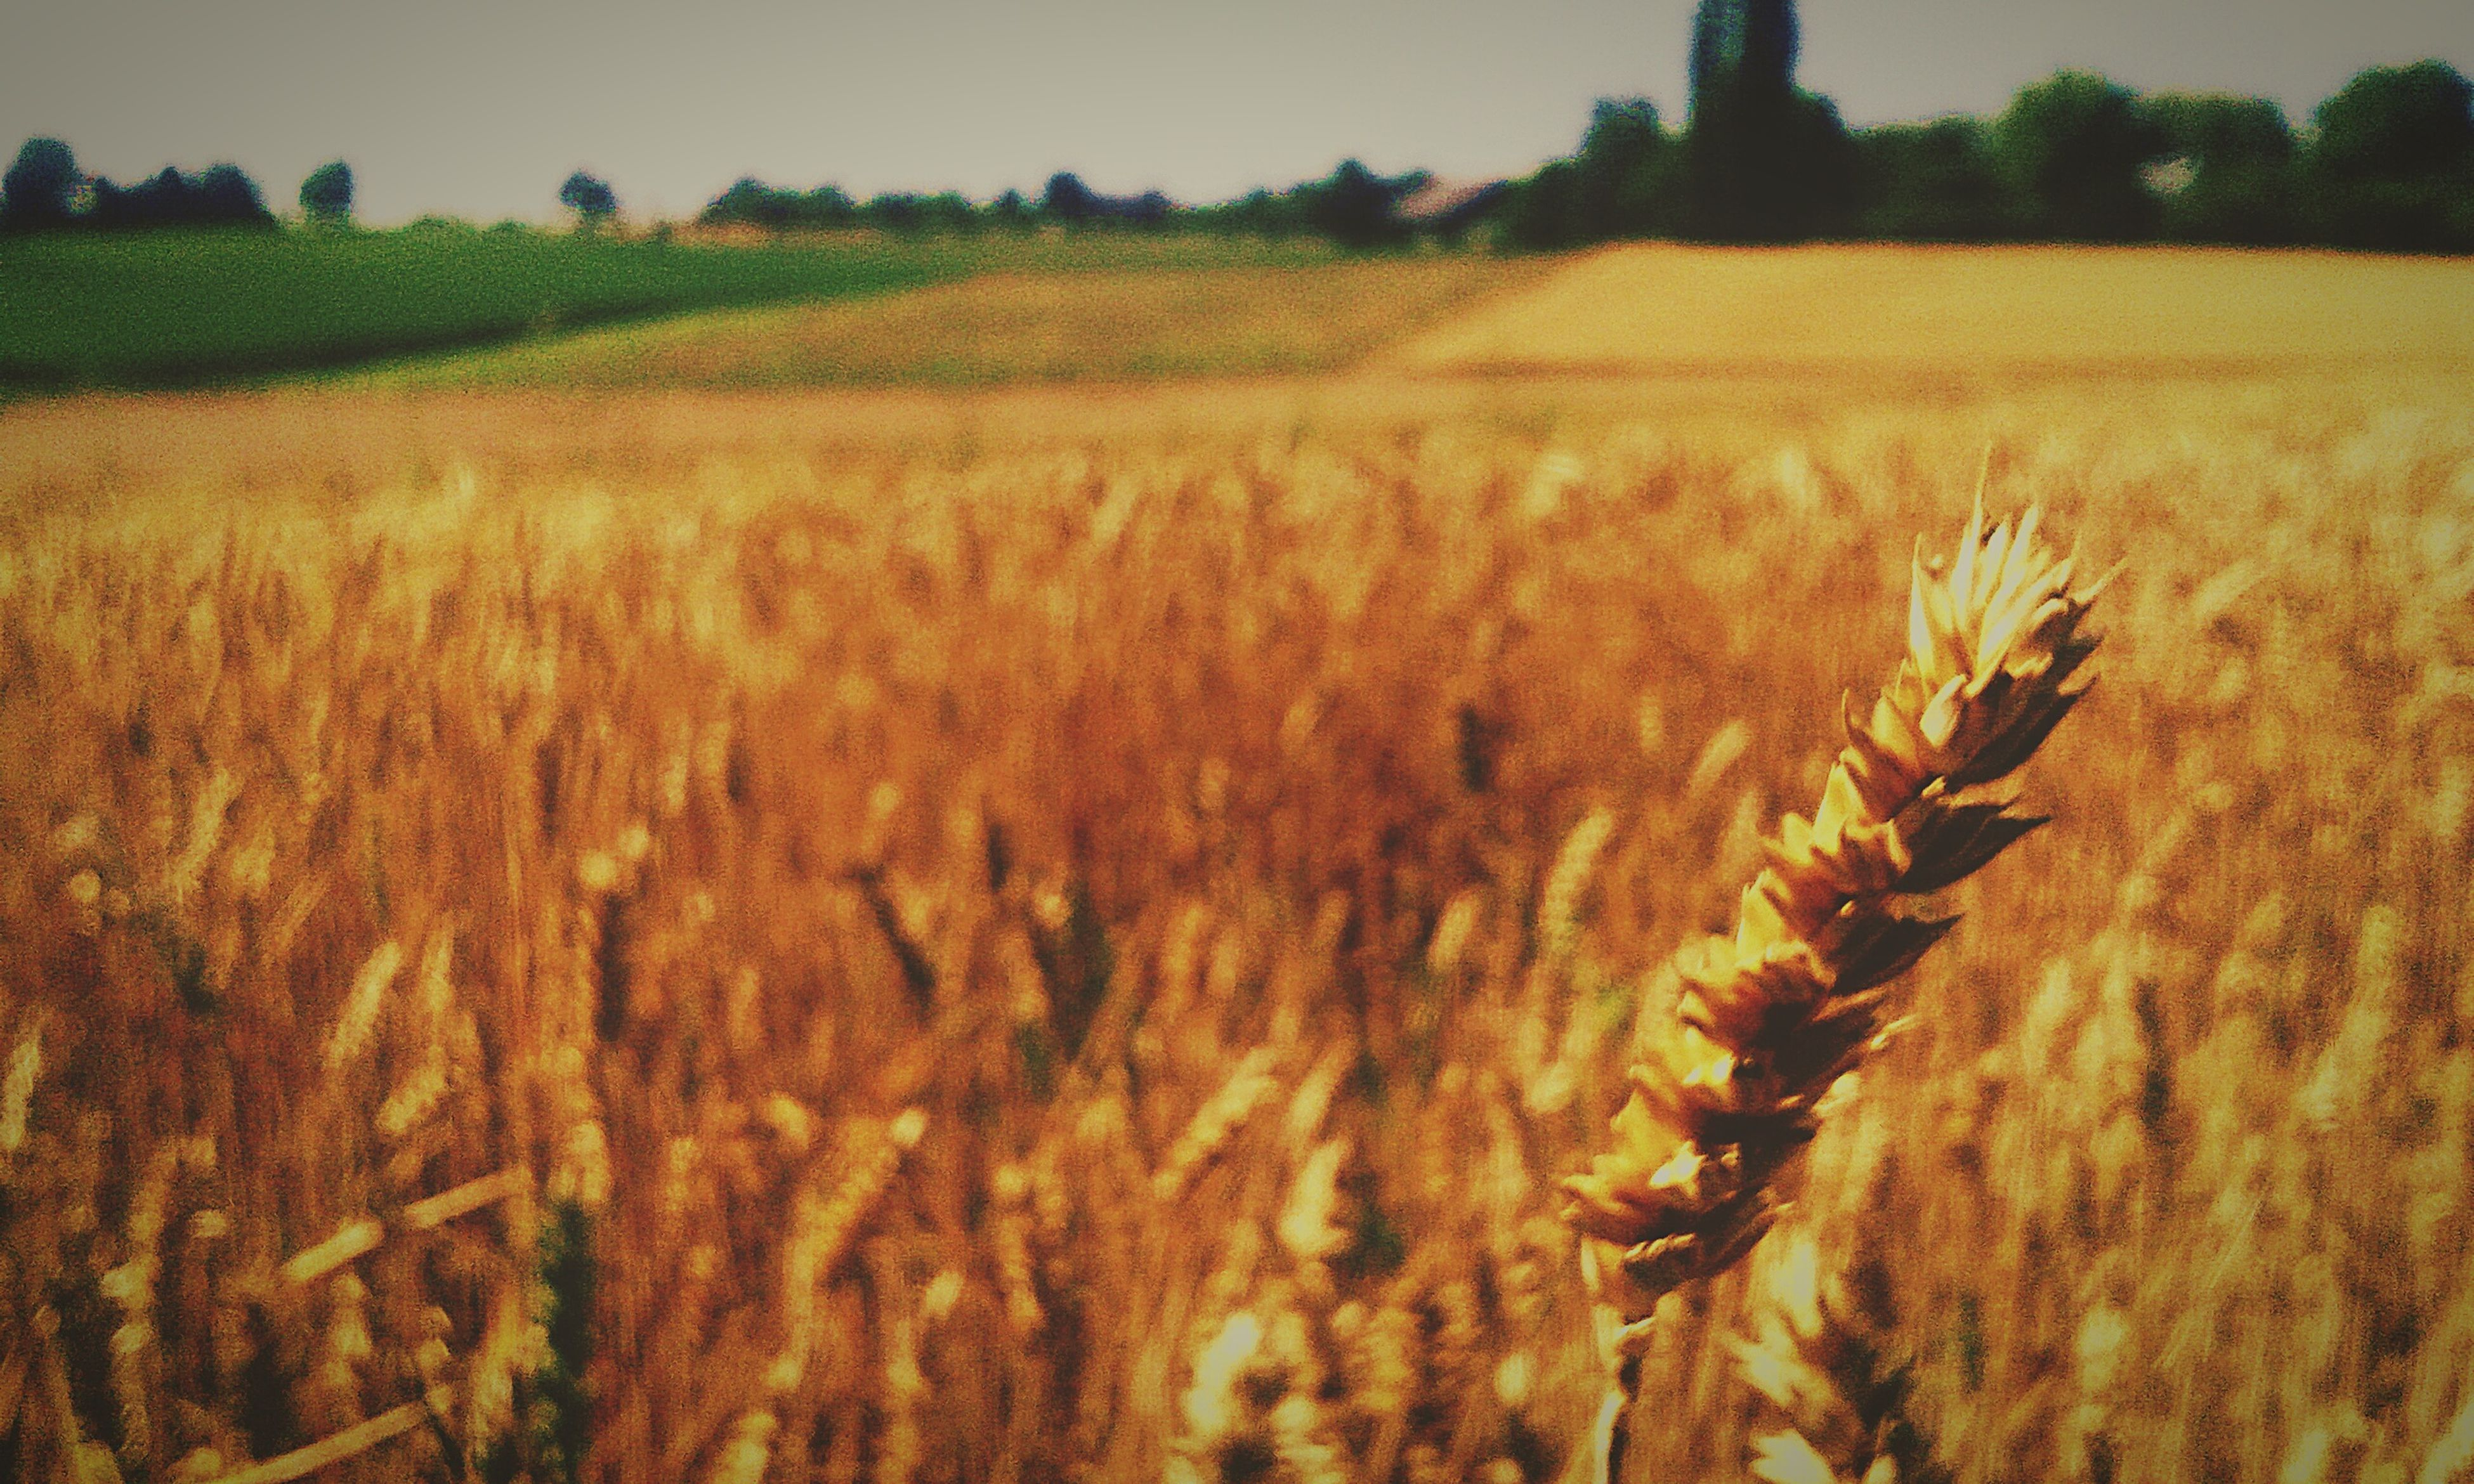 agriculture, field, rural scene, growth, landscape, crop, farm, tranquility, nature, tranquil scene, beauty in nature, cultivated land, plant, cereal plant, yellow, wheat, scenics, dry, outdoors, selective focus